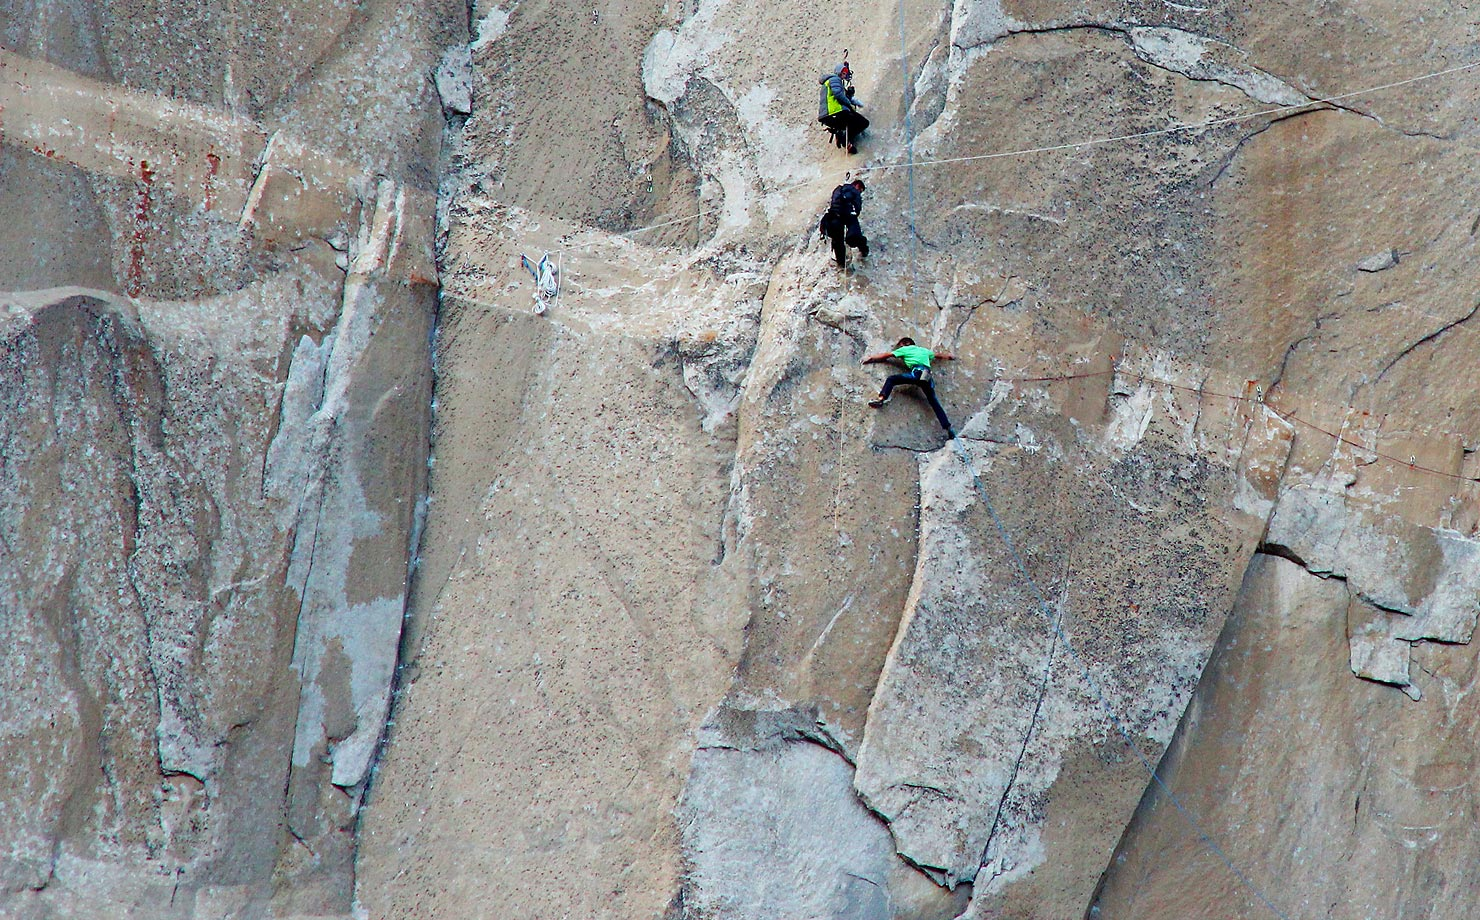 Kevin Jorgeson (in green) Climbing on Pitch 15 – top and center people are photographers.